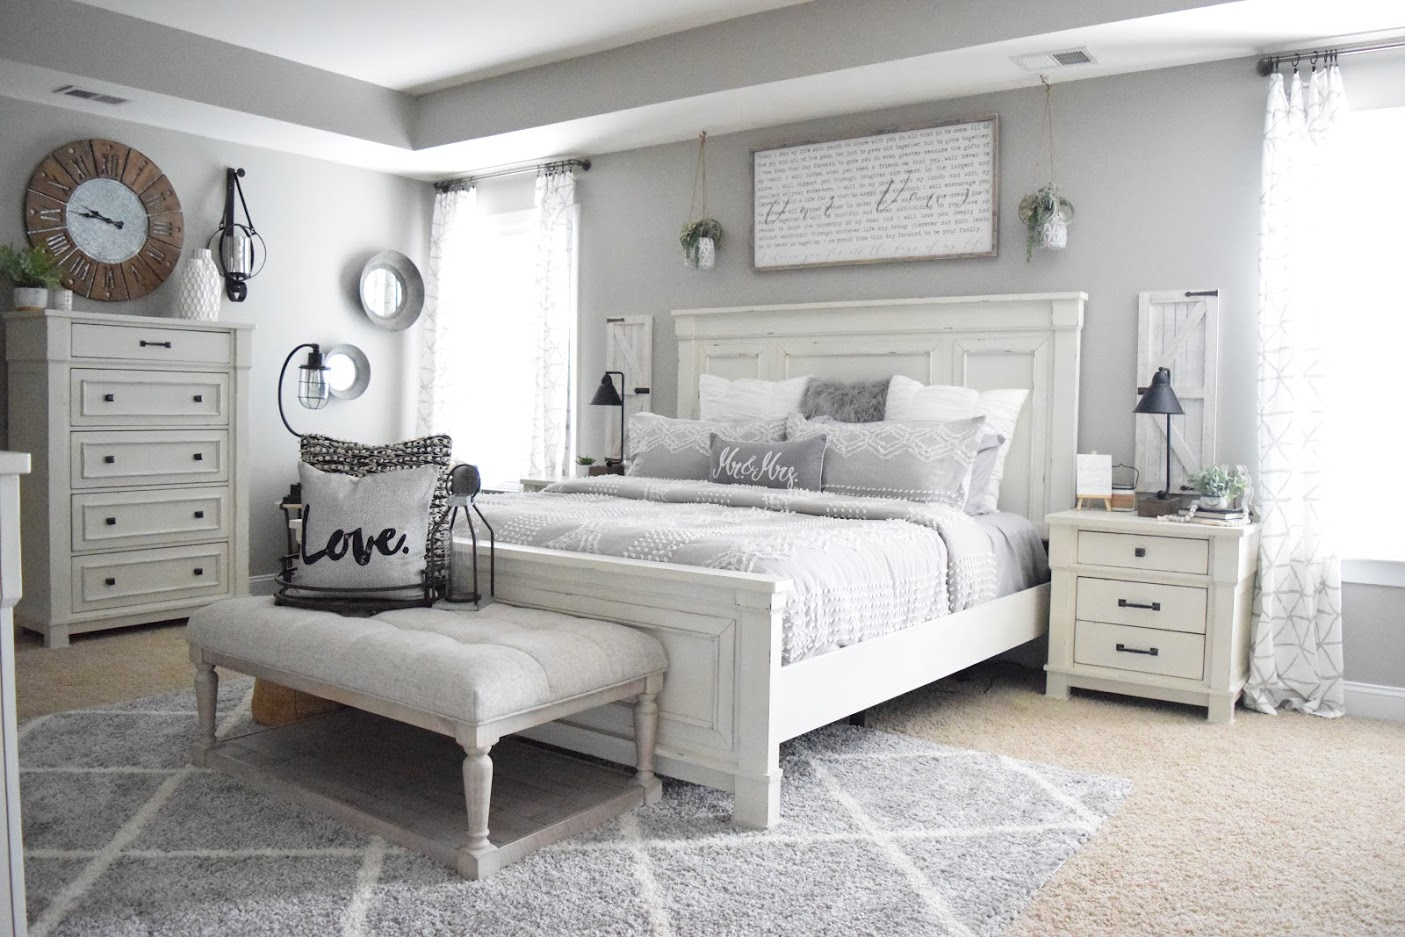 Robin Long Personalizes Master Bedroom with Love  Ashley HomeStore